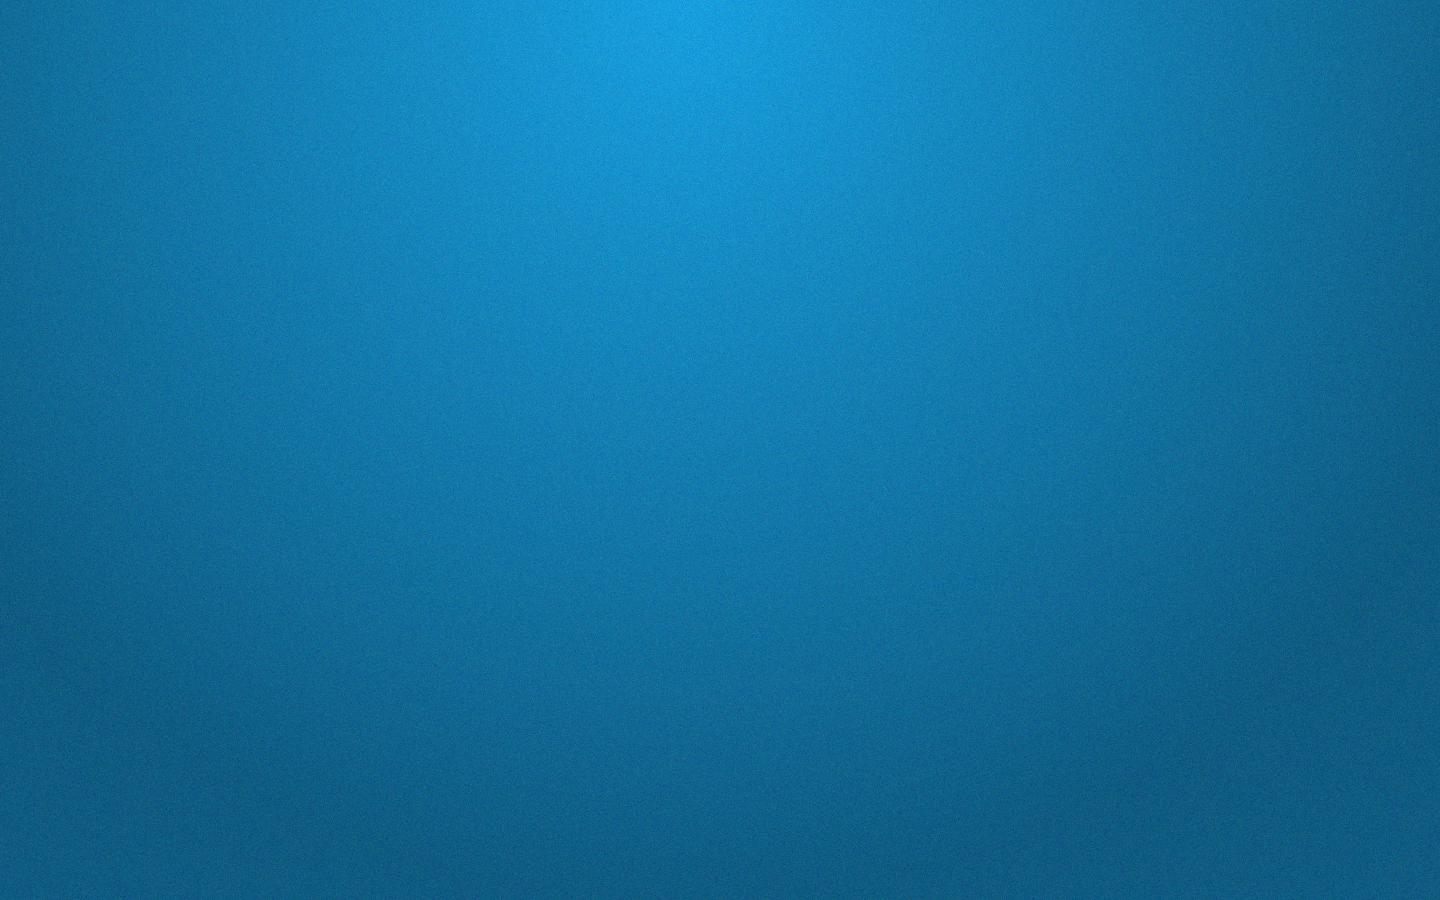 Blue | HQFX Wallpapers